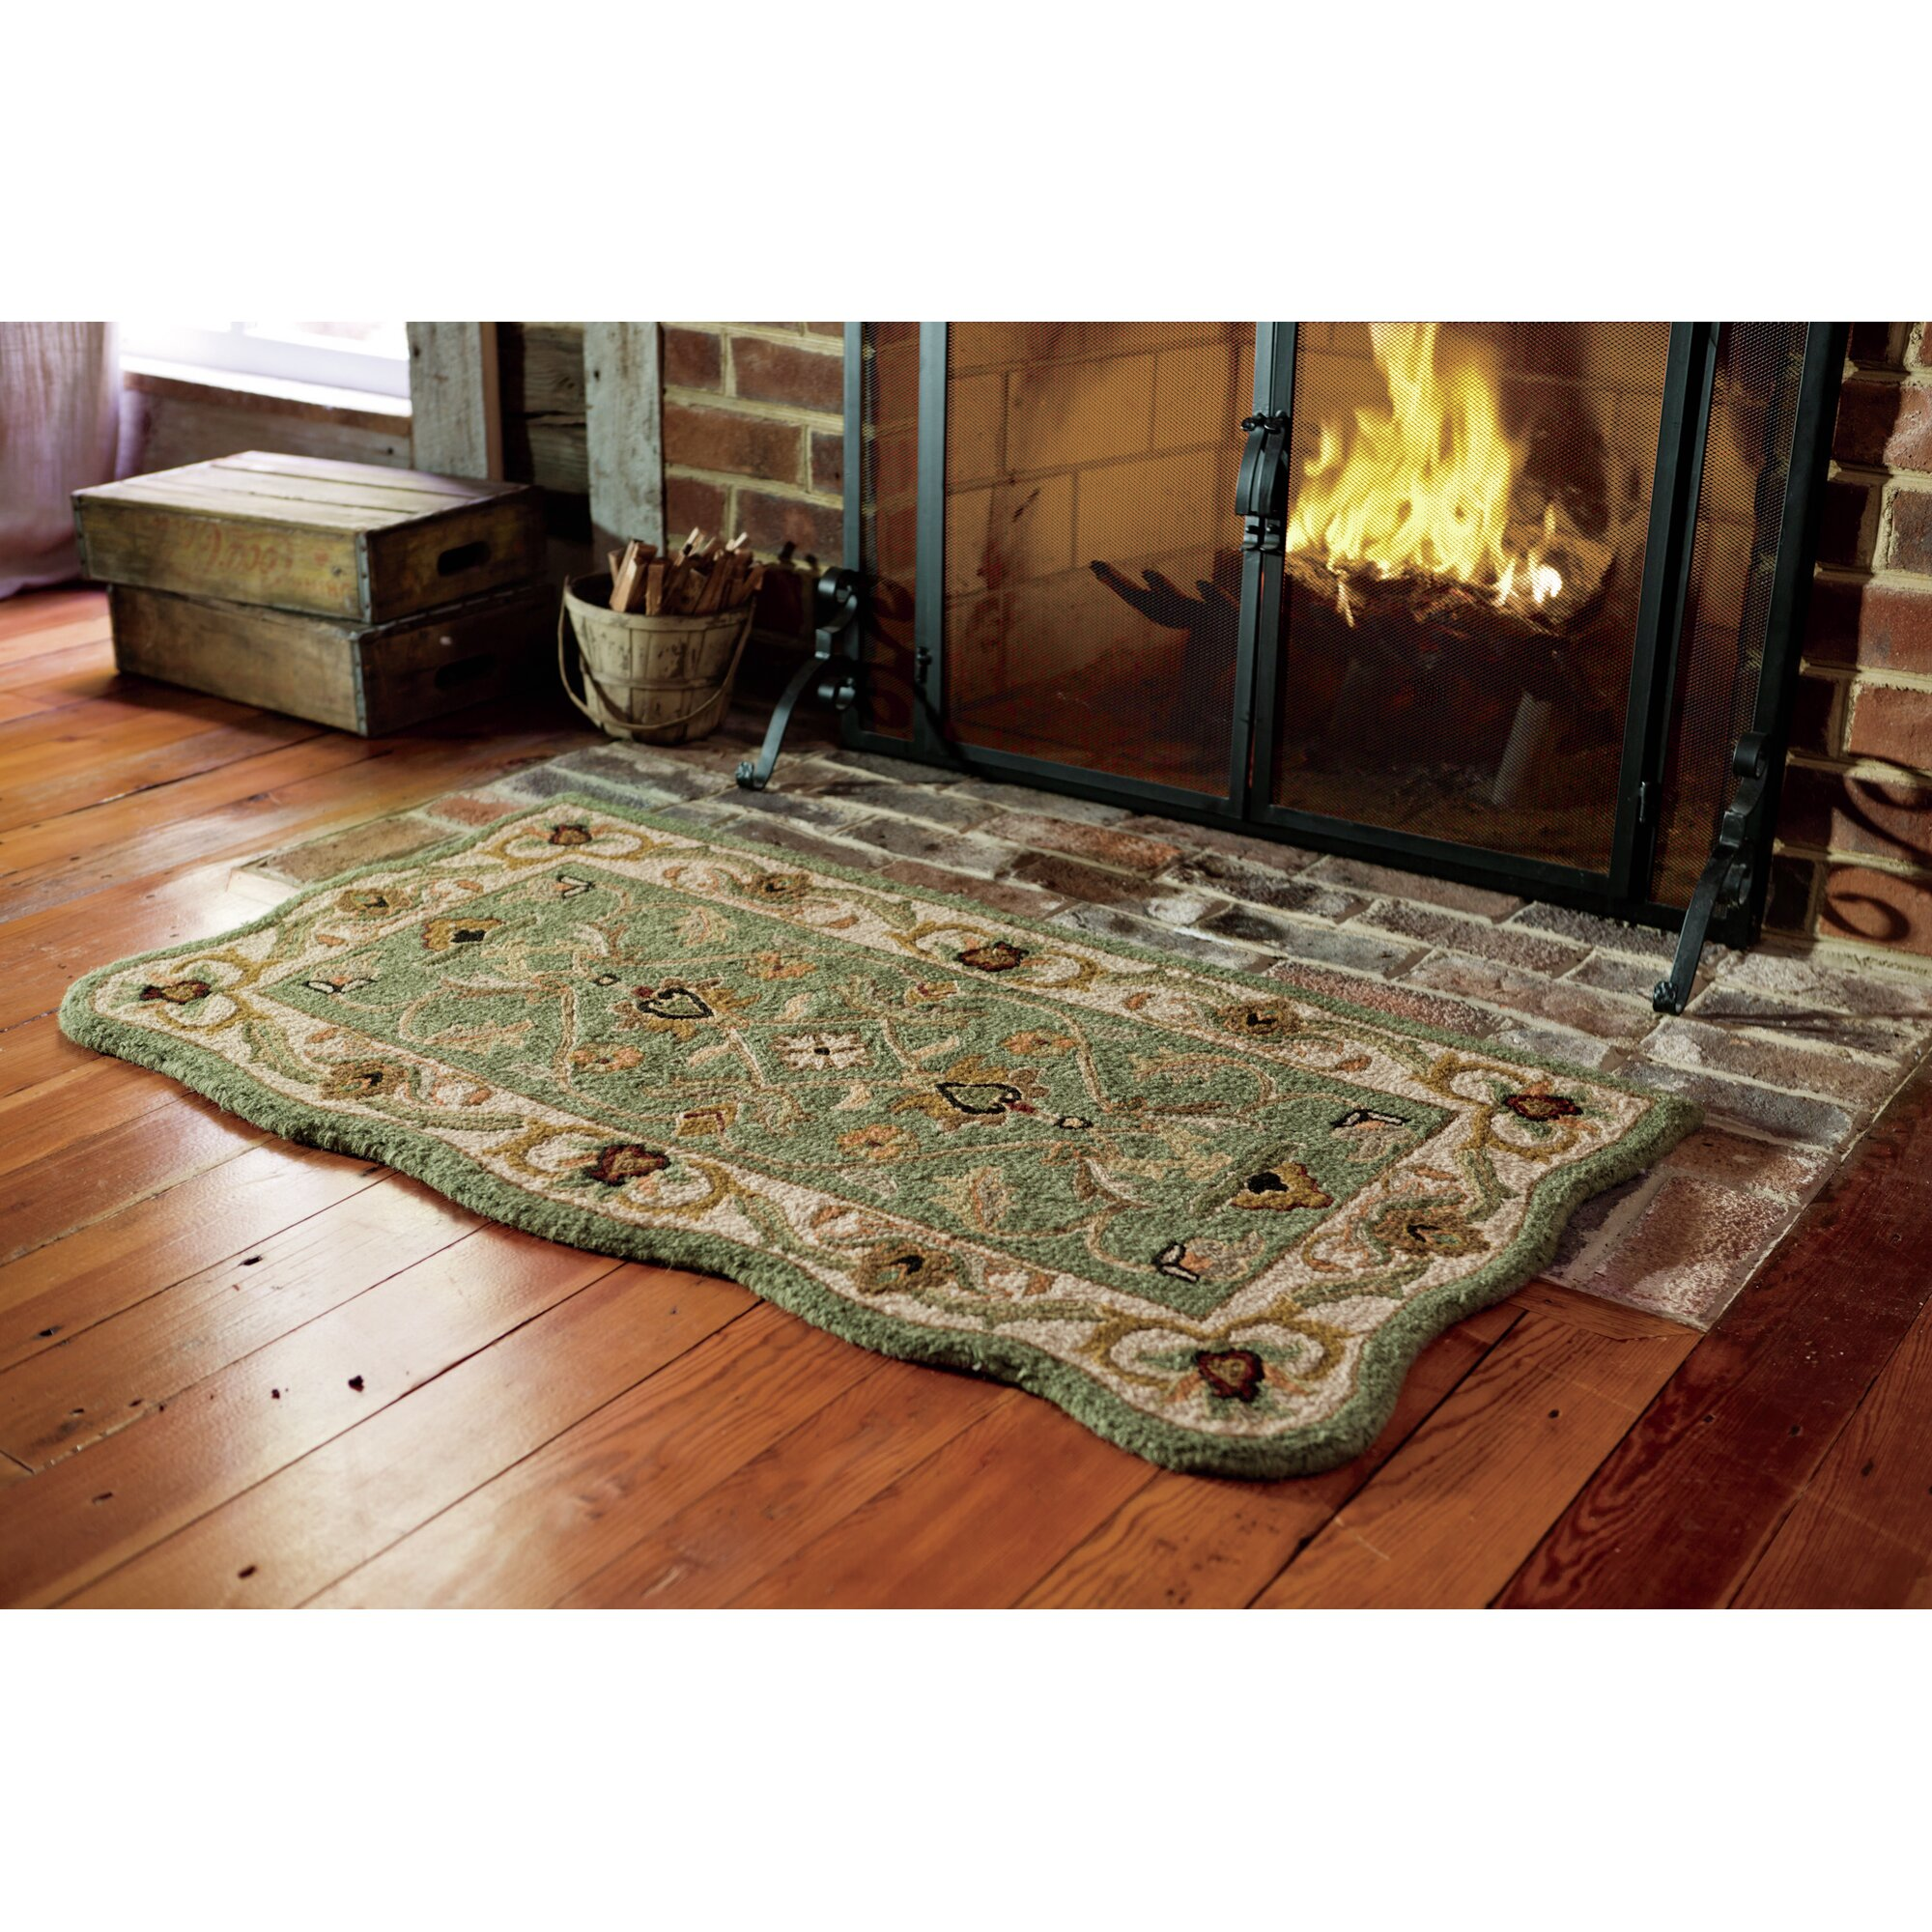 Plow Hearth Scalloped McLean Hearth Rug Reviews Wayfair